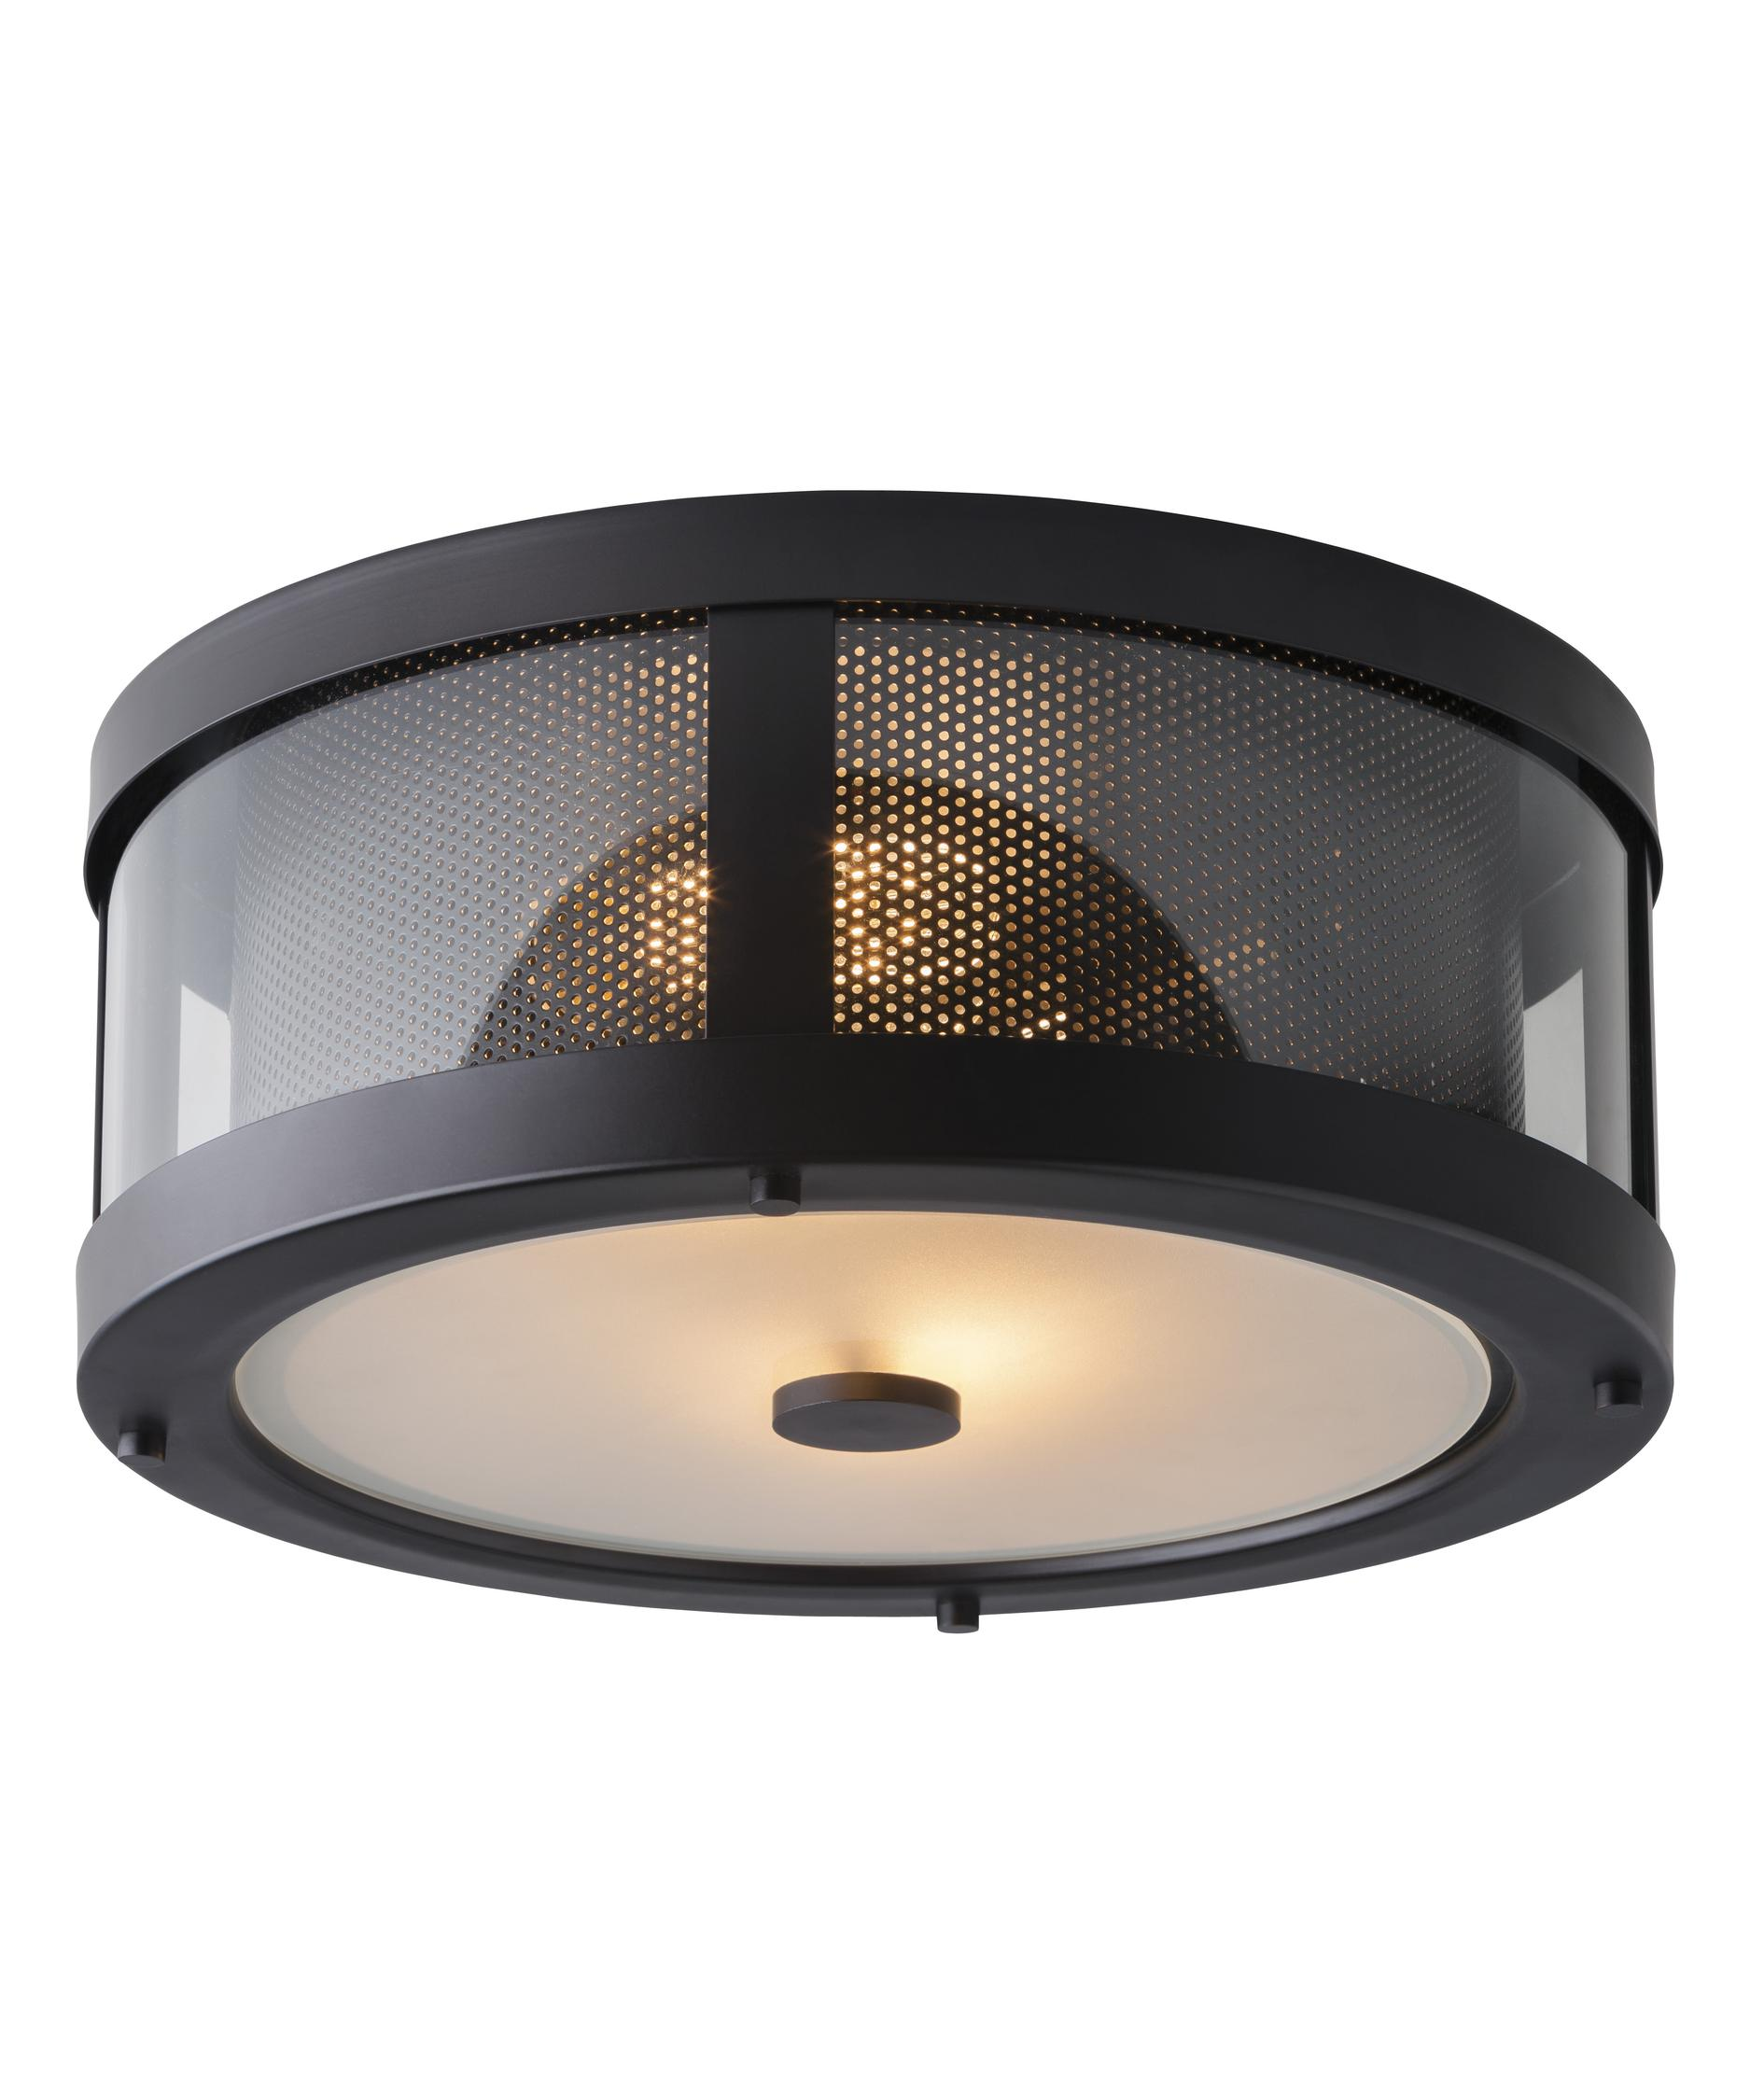 Flush mount outdoor lighting - Shown In Oil Rubbed Bronze Finish And Clear Glass